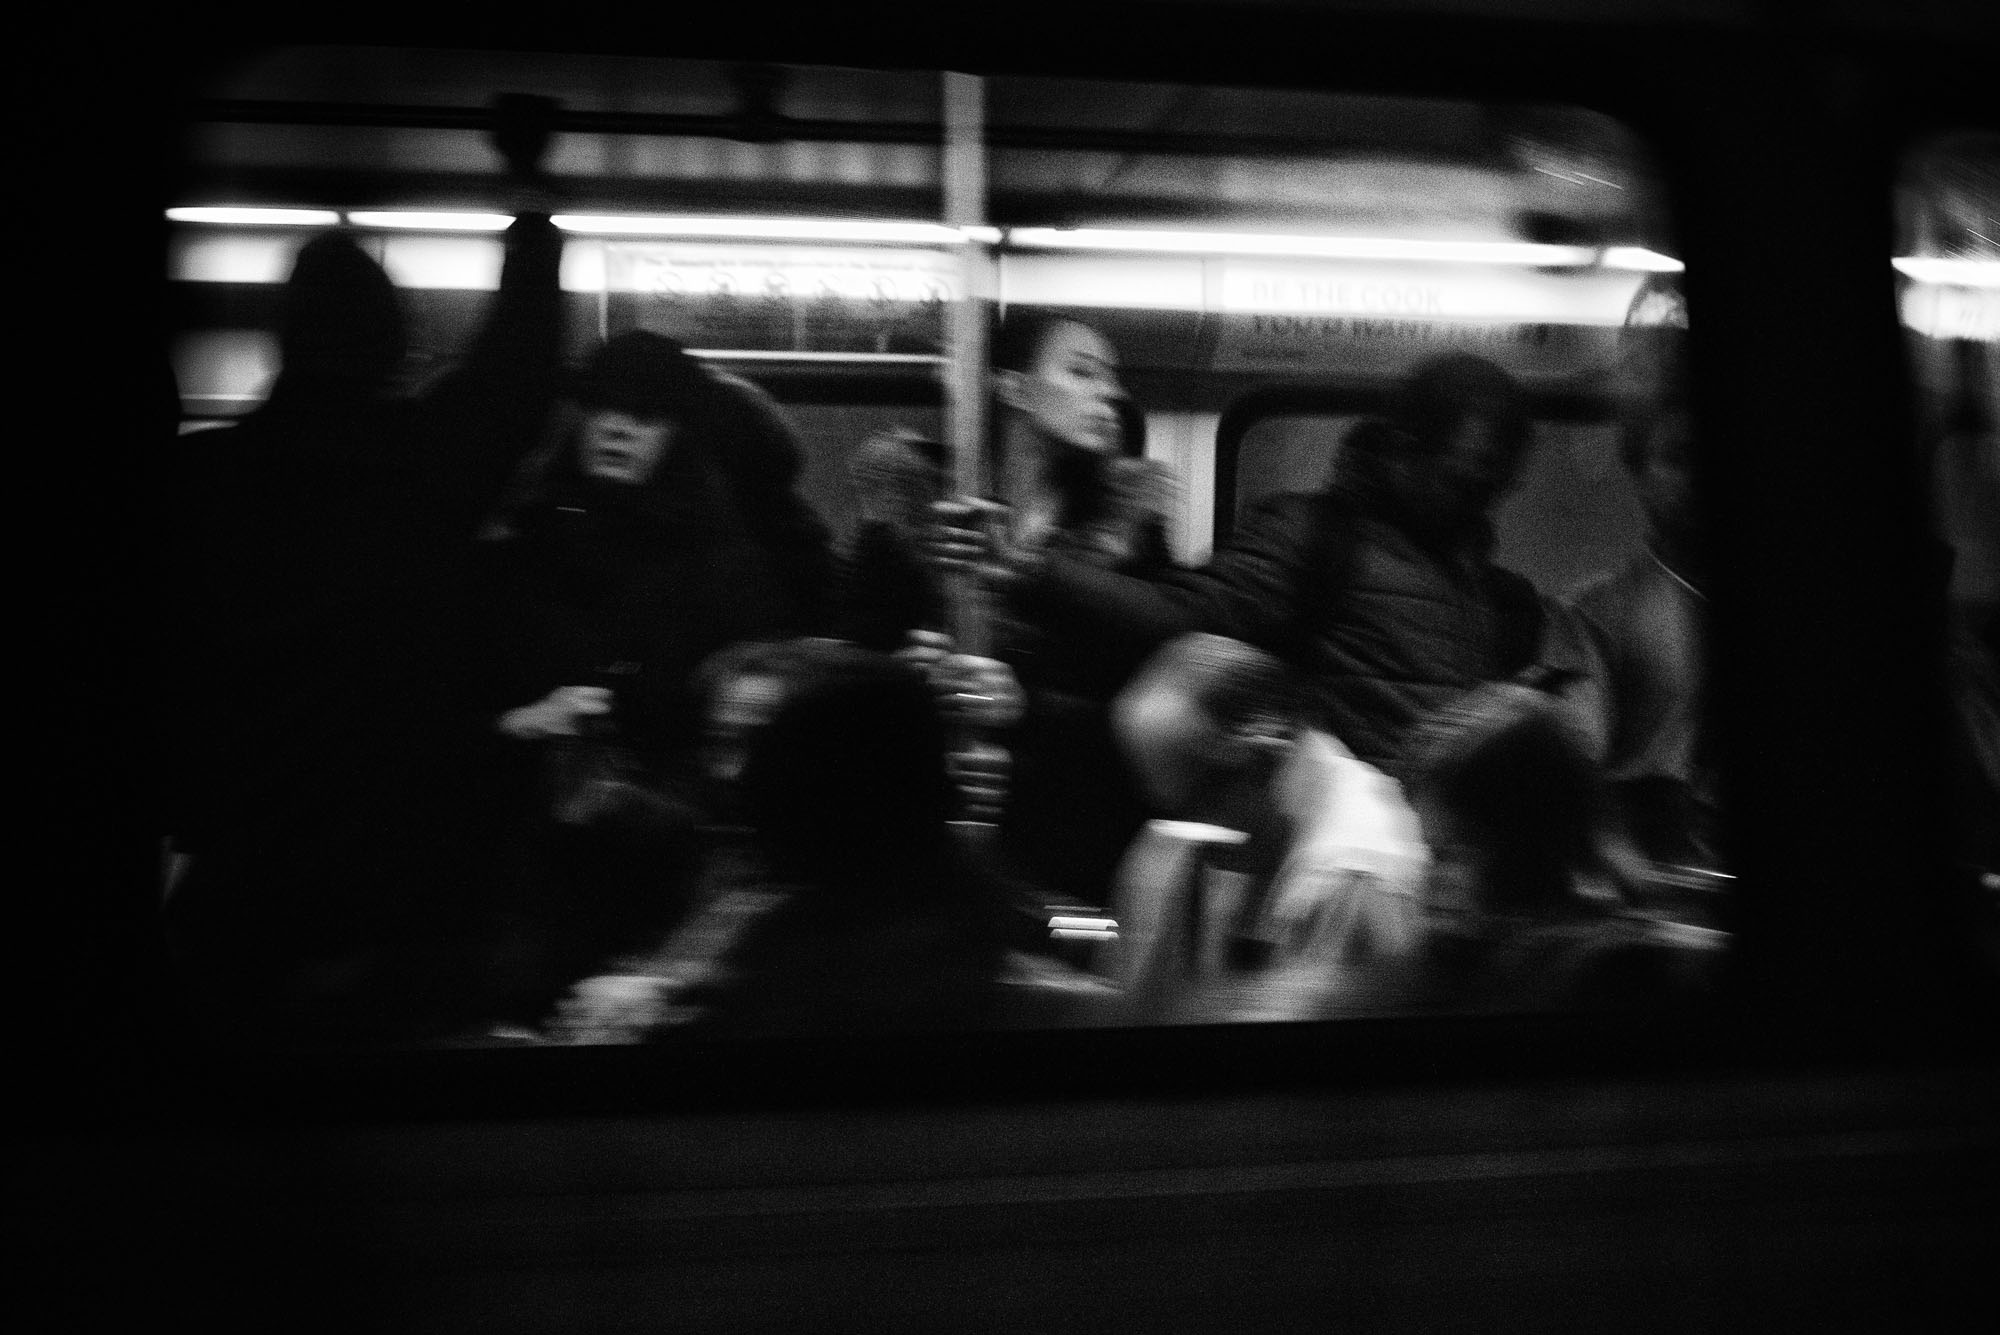 DC Metro riders on February 6, 2017.